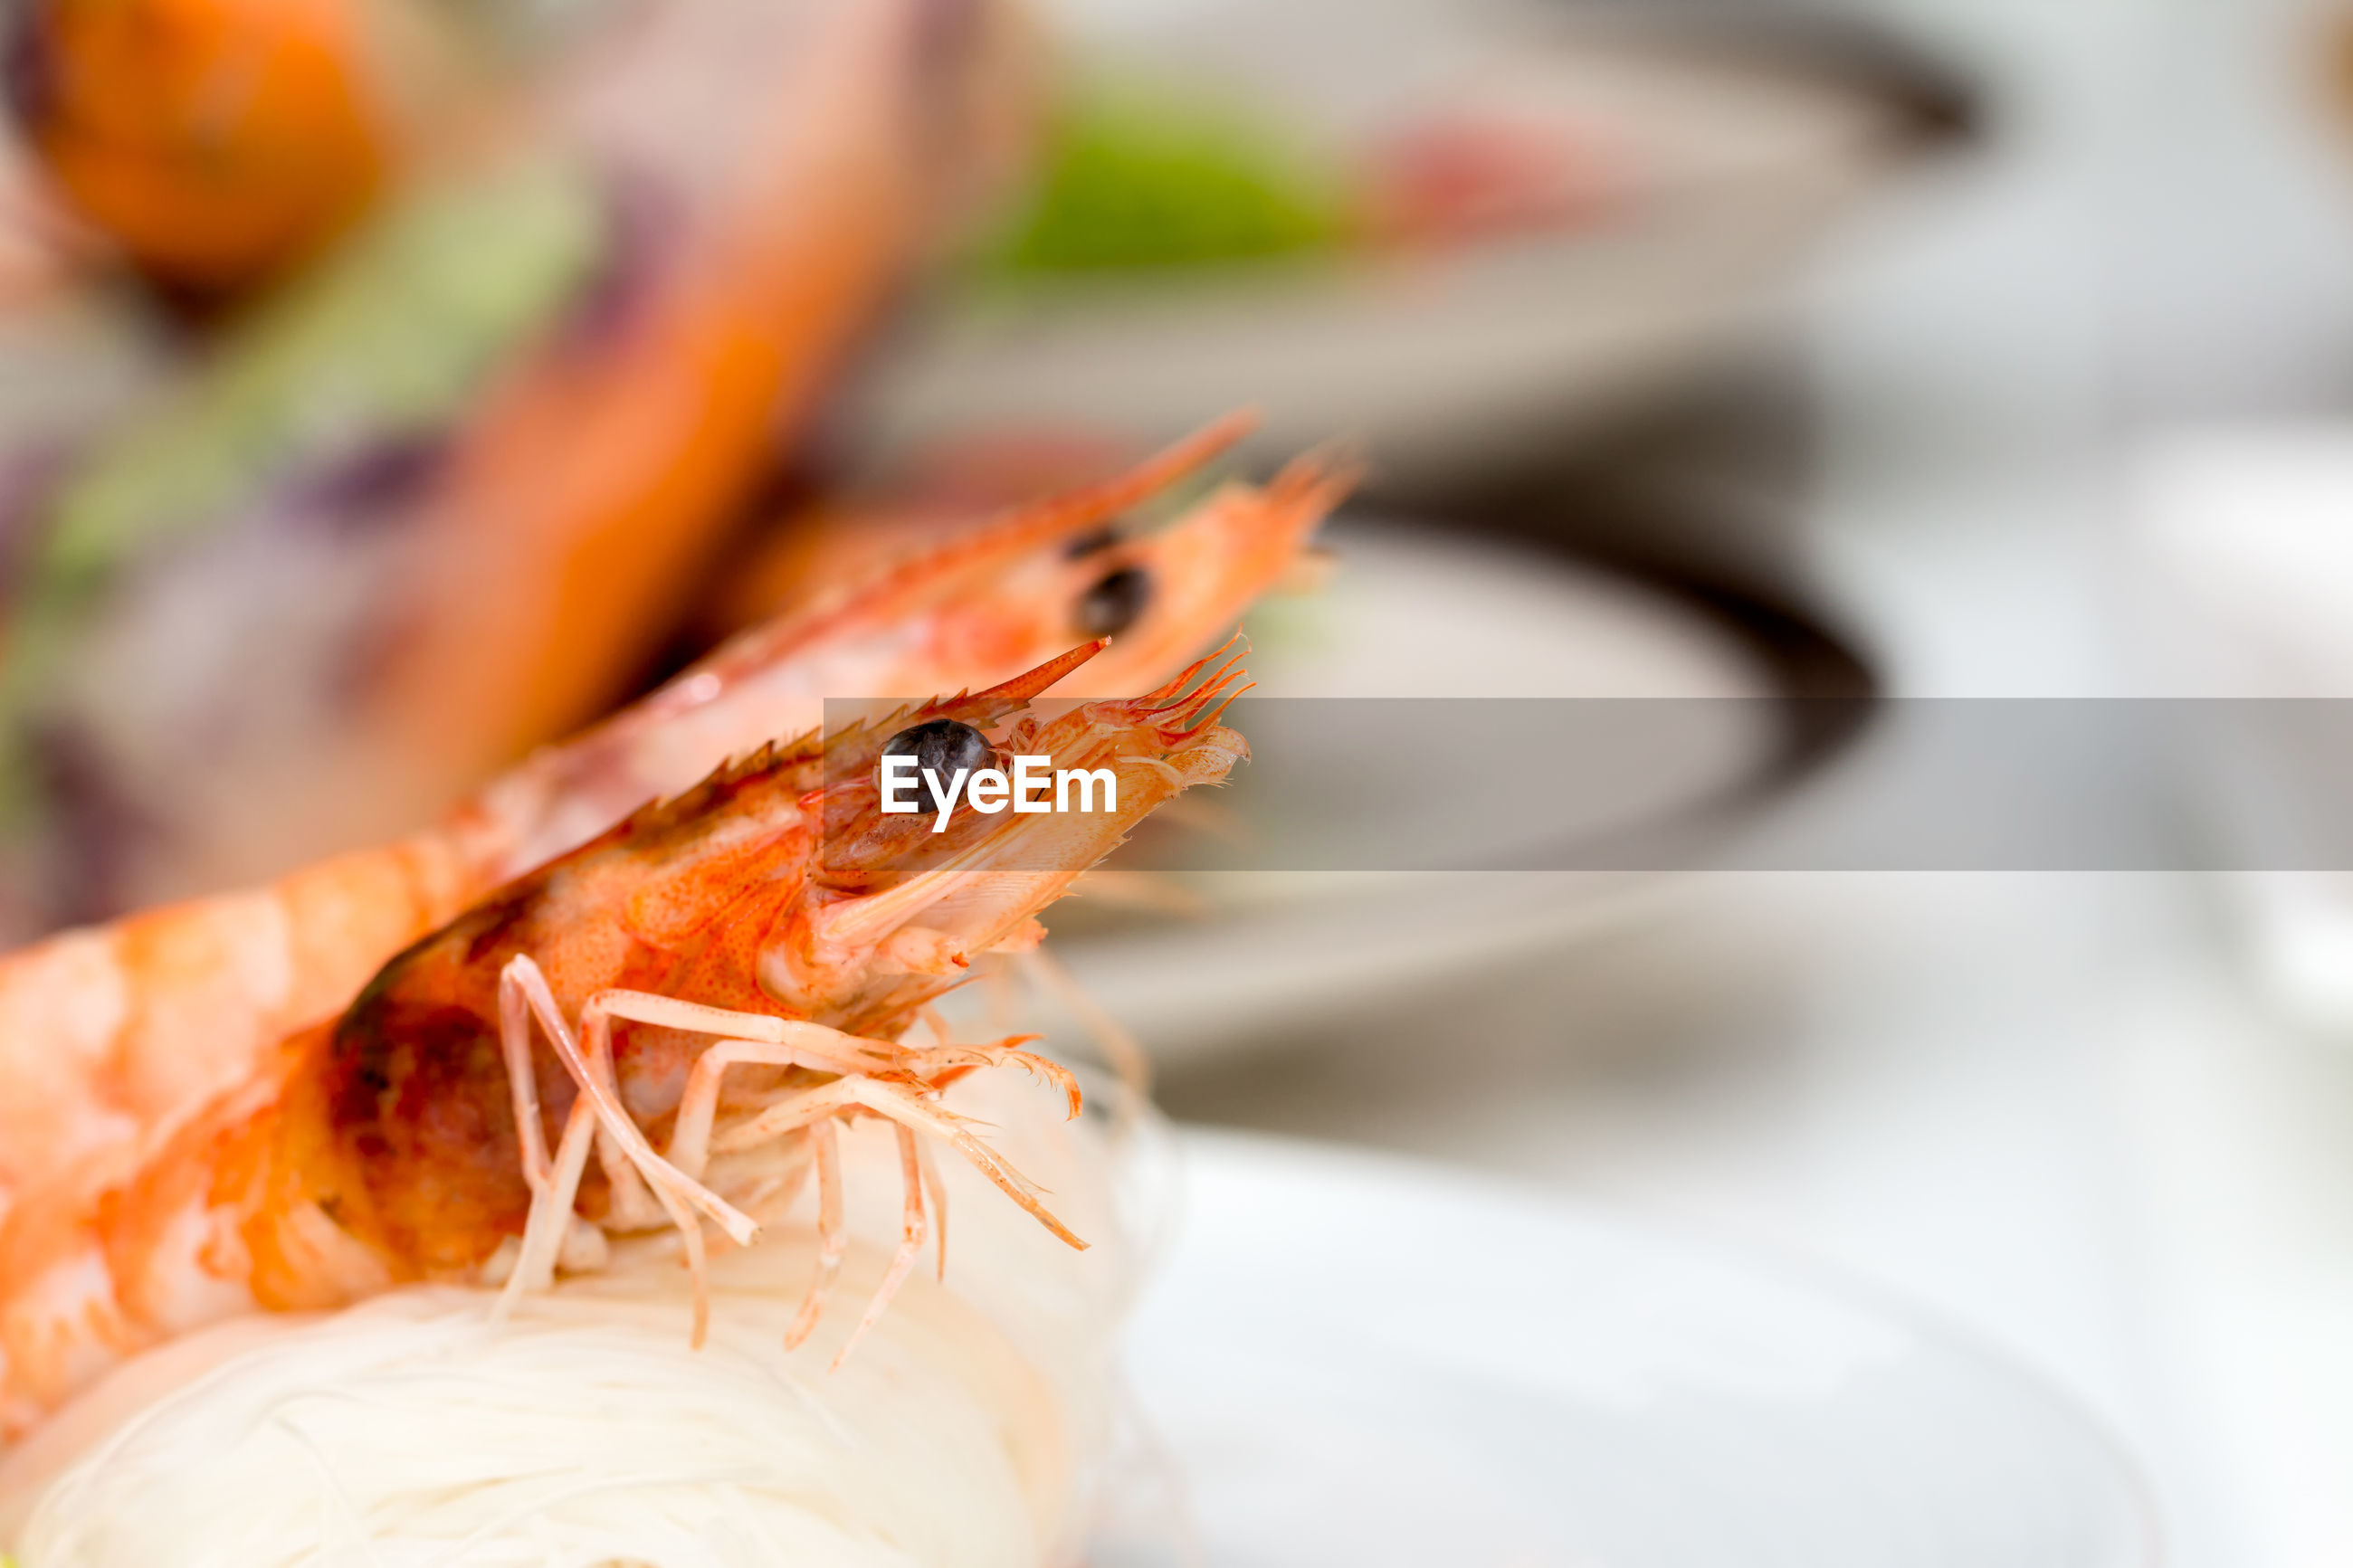 CLOSE-UP OF CRAB IN PLATE